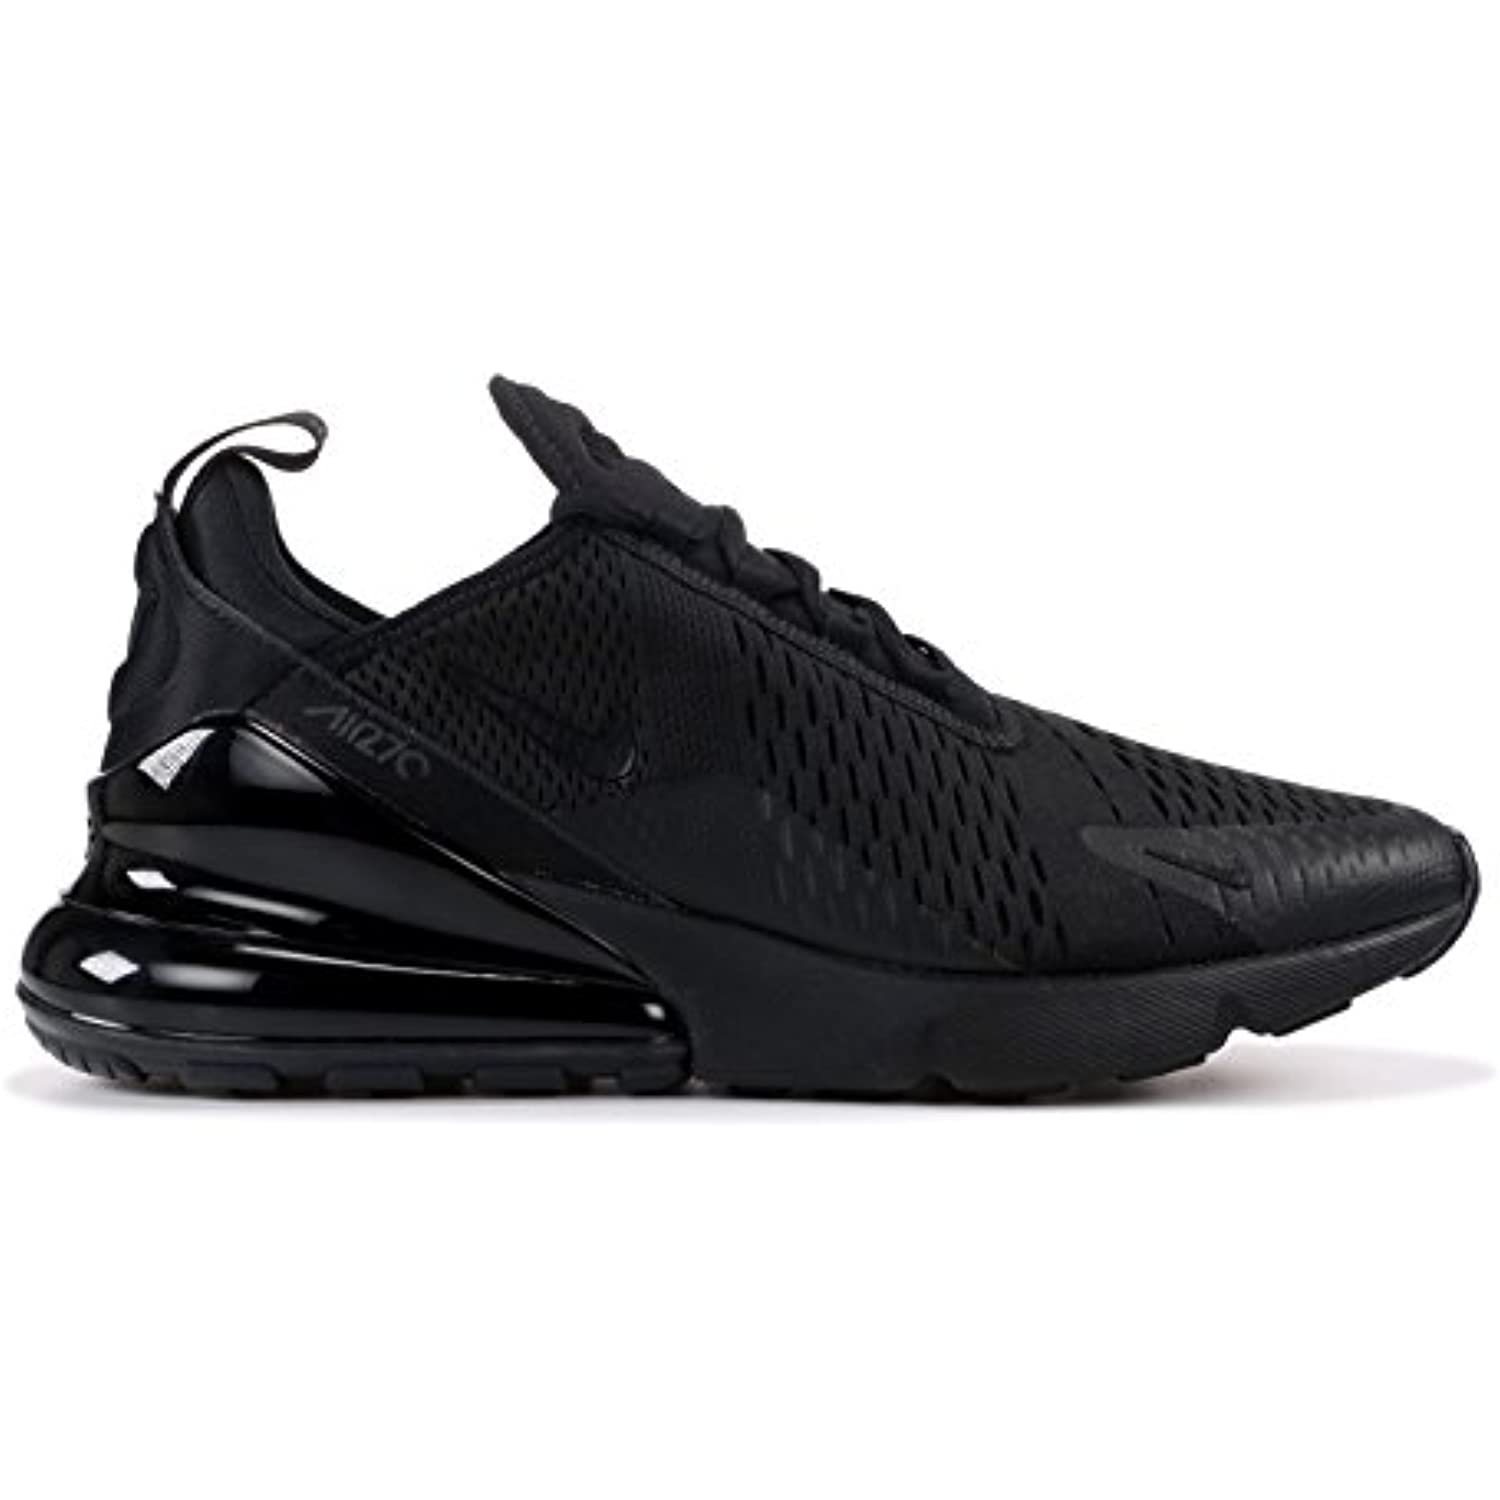 RealMBX 2018 Most Popular Sneakers, Scarpe da Corsa Uomo 2018  New Fashion Shoes 44.5  2018 Parent 7d6480